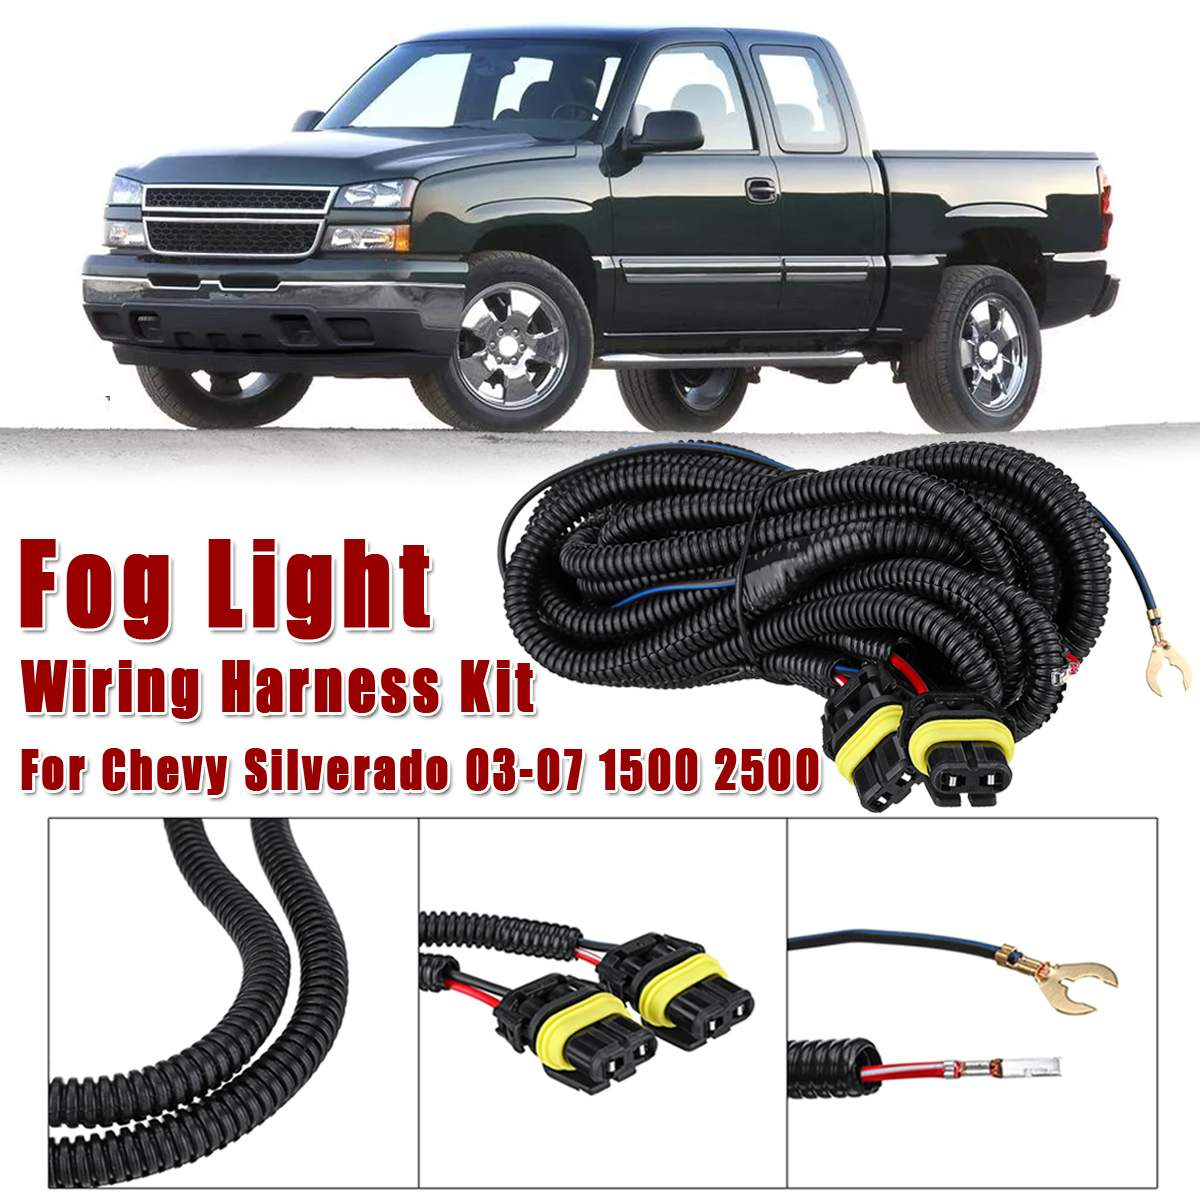 [DIAGRAM_3ER]  Fog Light Wiring Harness Socket Wire Connect Kit For Chevy Silverado 2003  2004 2005 2006 2007 1500 2500 Car Light Assembly 1PCS|Car Light Assembly| -  AliExpress | 2007 Chevy Silverado Wiring Harness |  | AliExpress